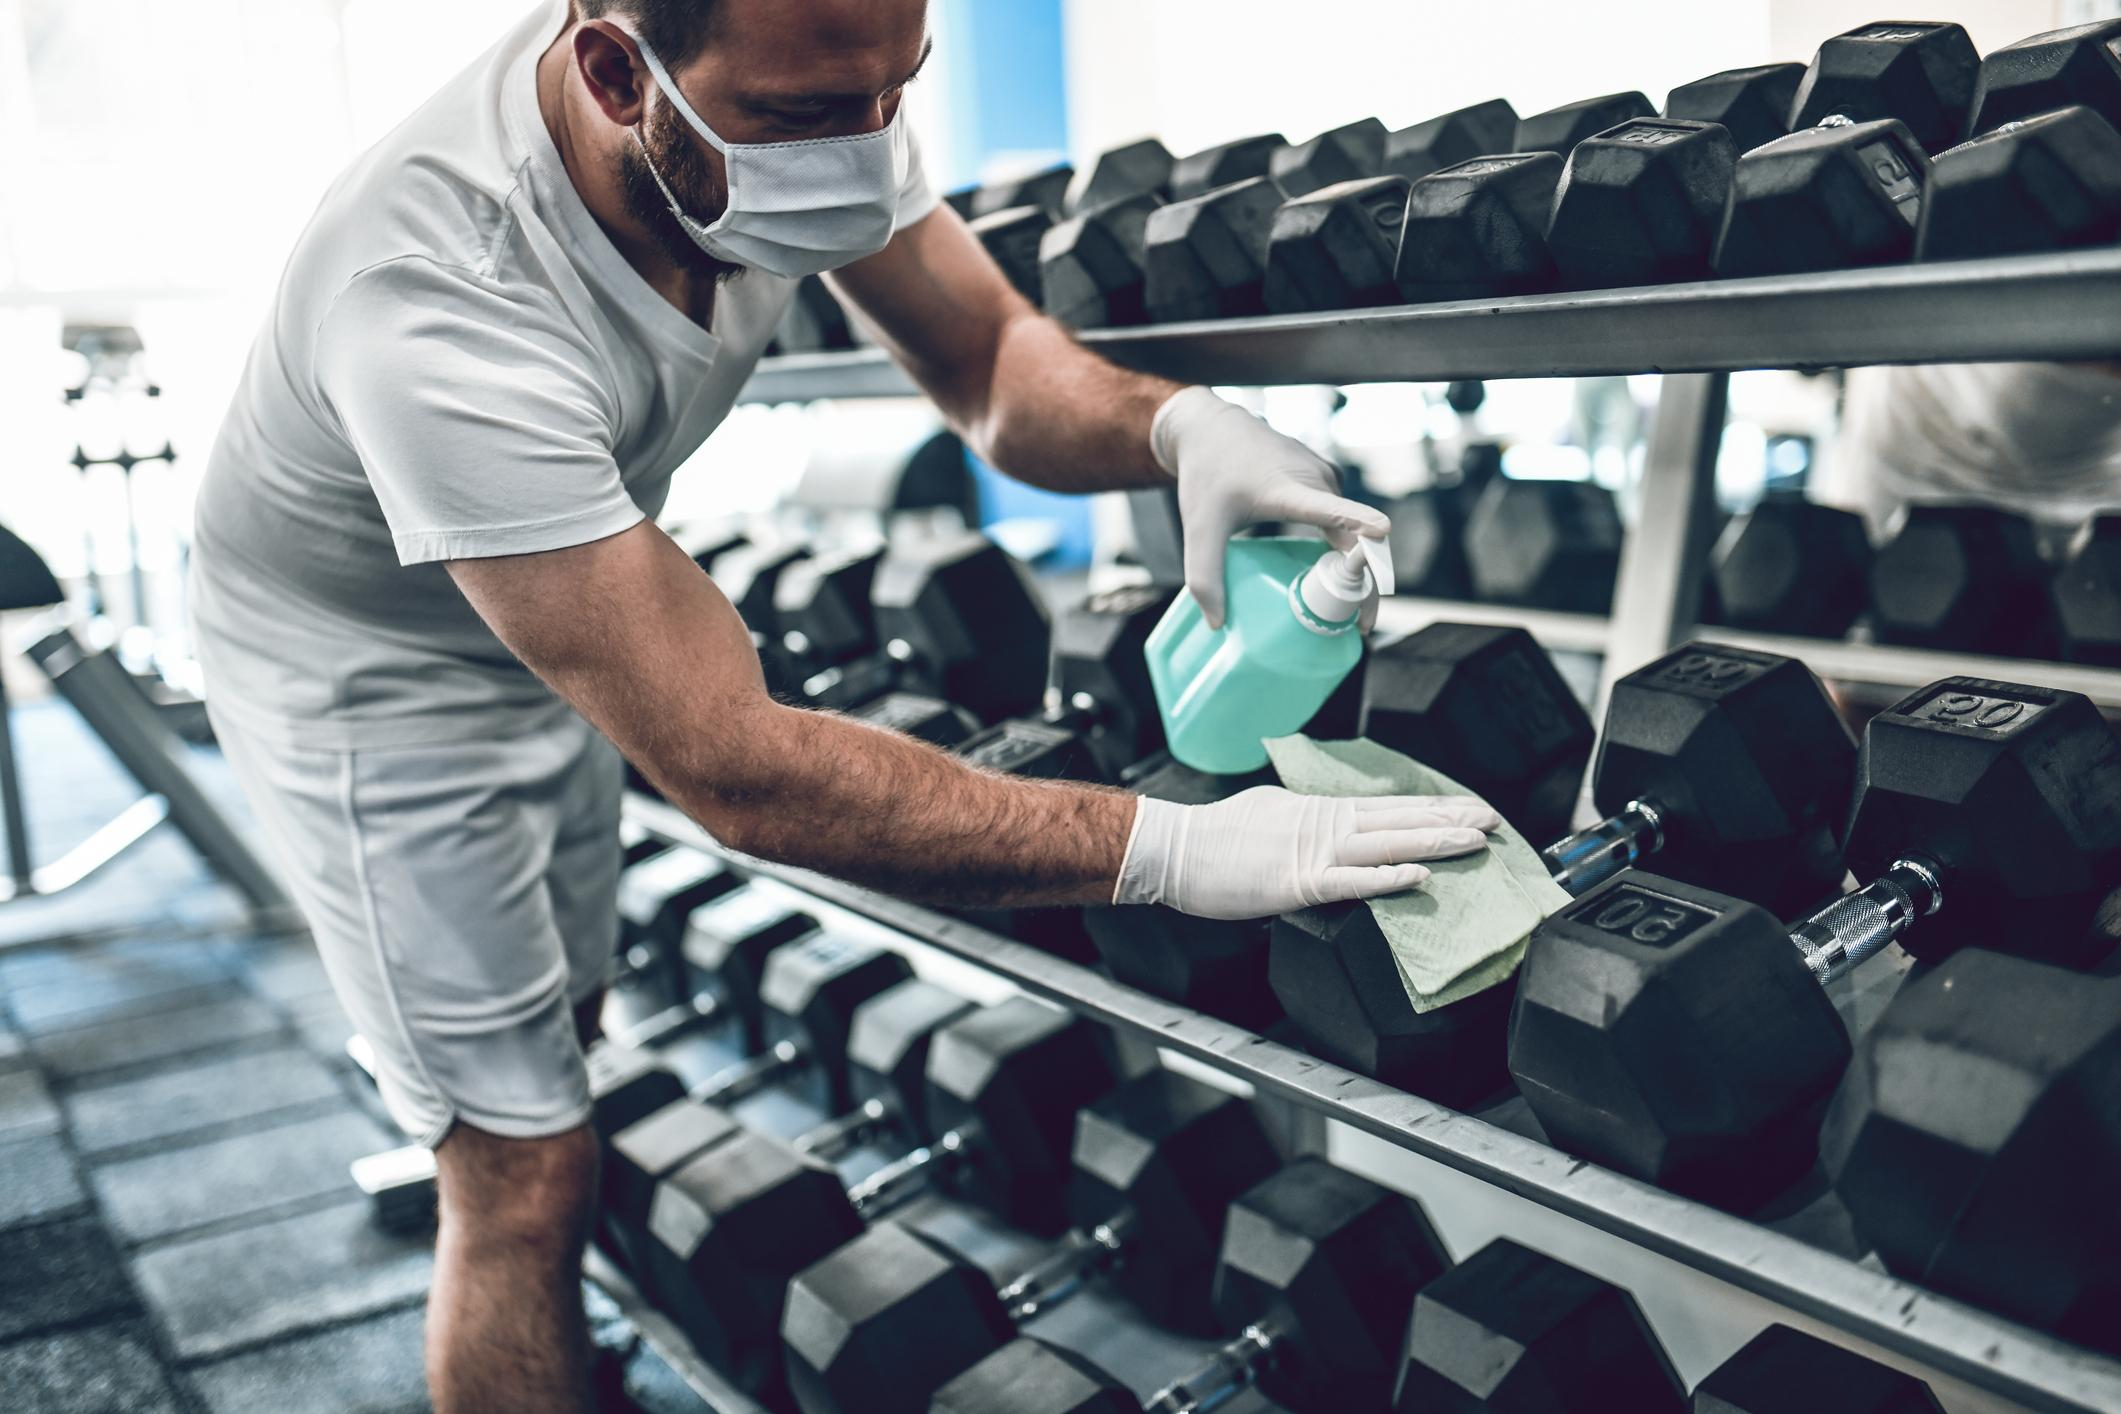 Man cleaning dumbells